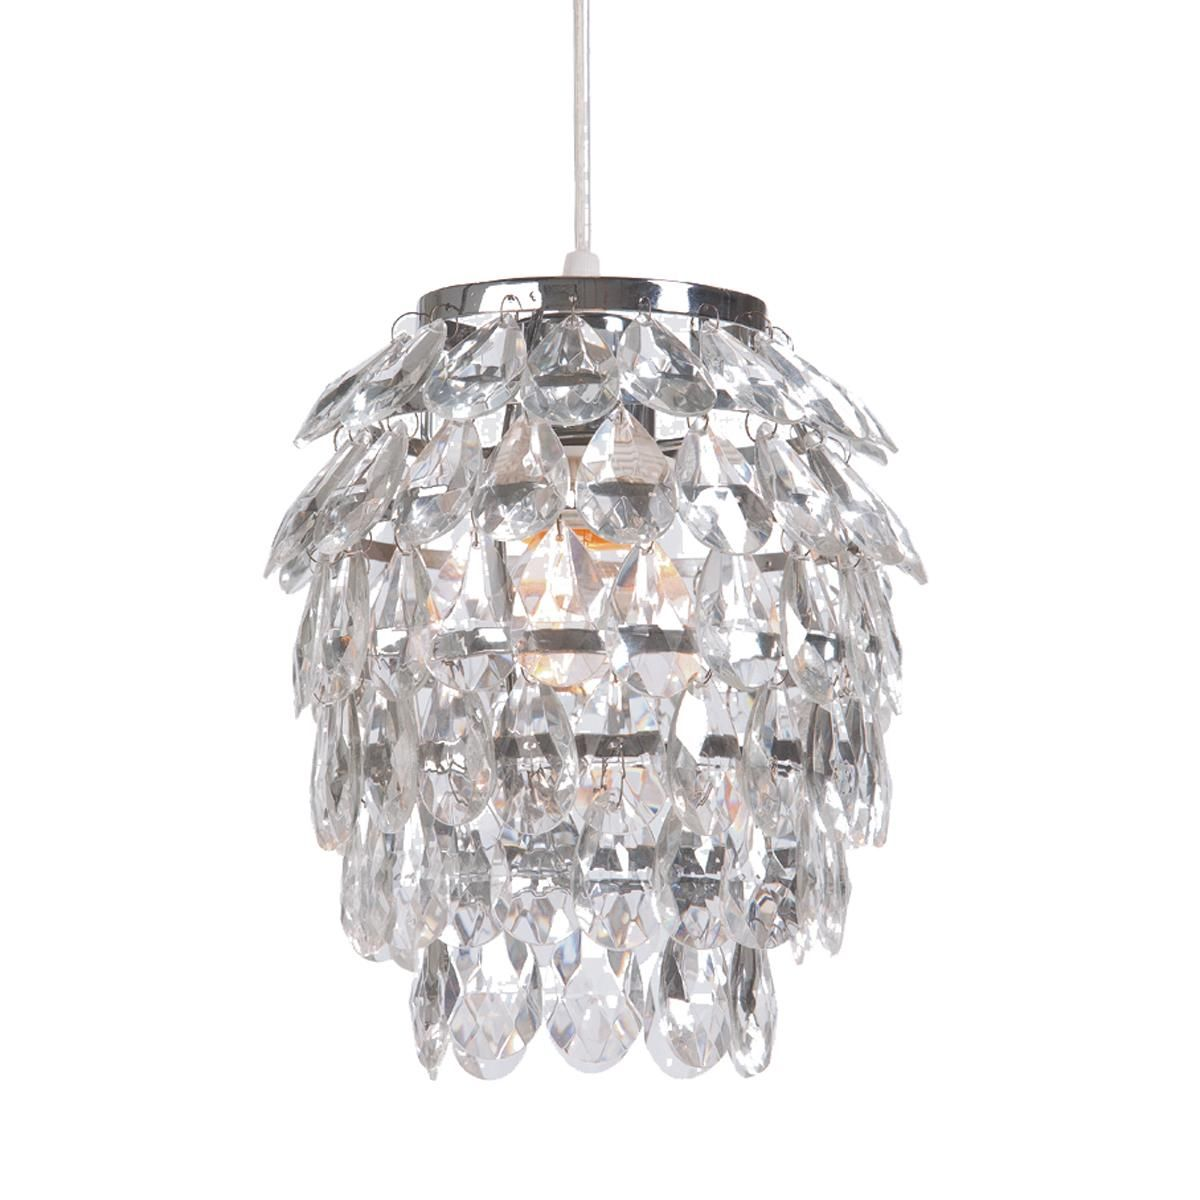 Crystal Curtain Mini Pendant Light Small Small Pendant Lights Mini Pendant Lights Crystal Pendant Lighting